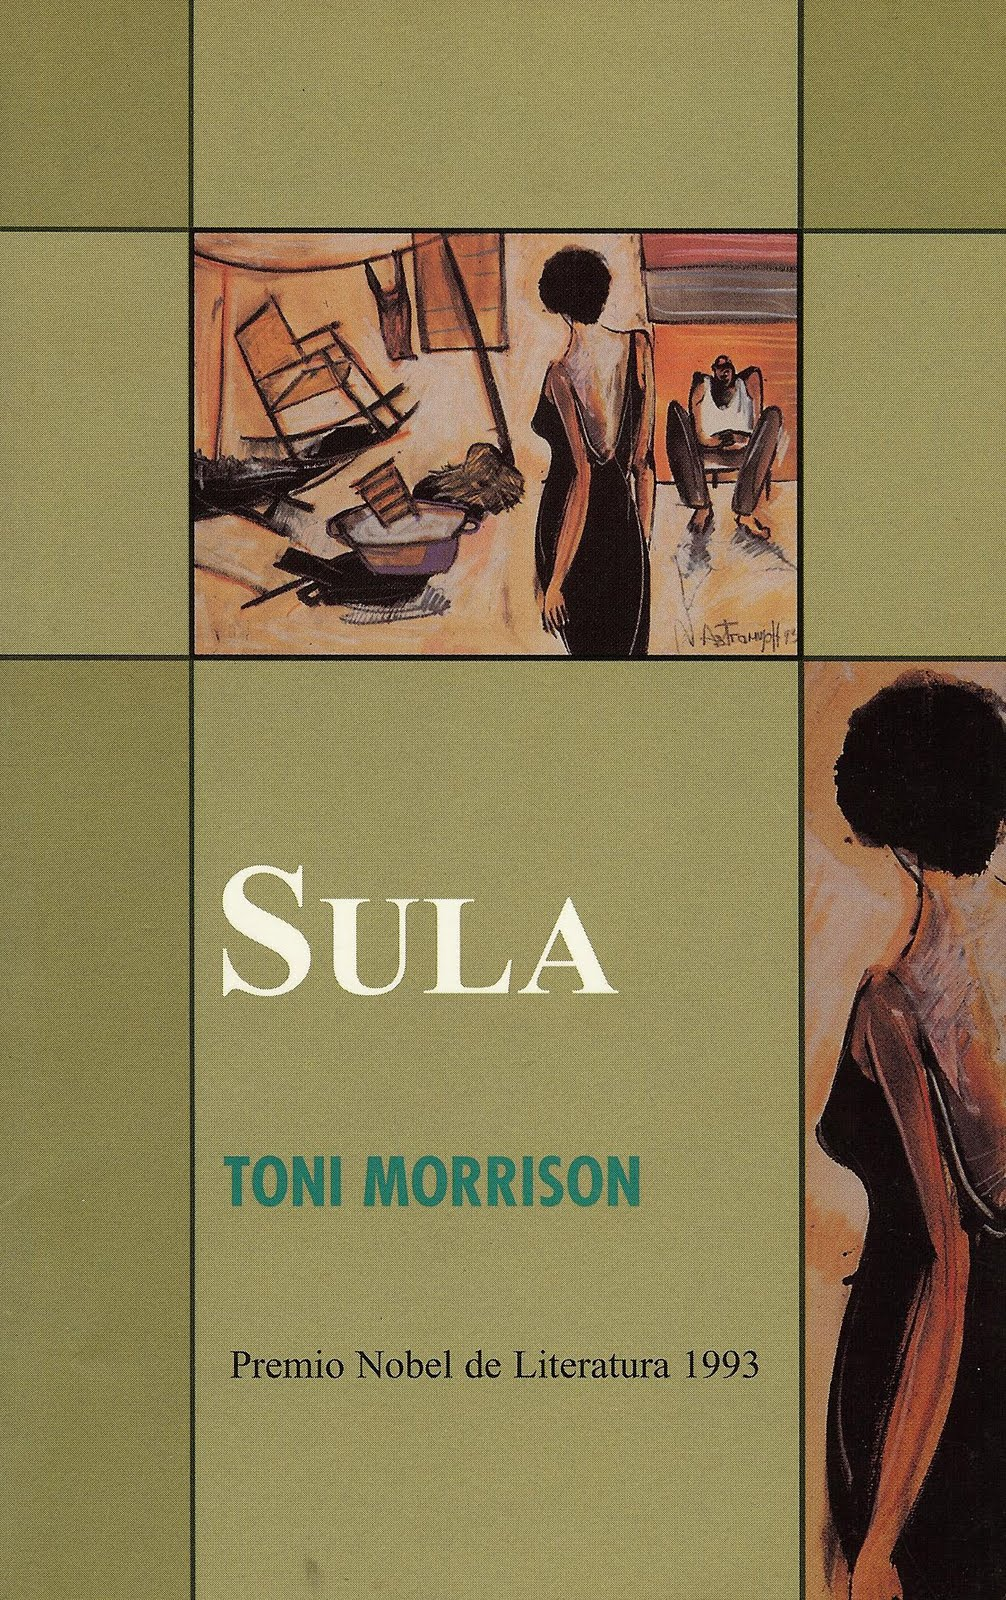 critical essay on sula In her essay boundaries: or distant relations and close kin, deborah mcdowell draws on the critical practices of hortense spillers and hazel carby and reads sula from a poststructuralist perspective, urging black women critics to develop and practice [] critical approaches interactively, dialogically instead of viewing black female.